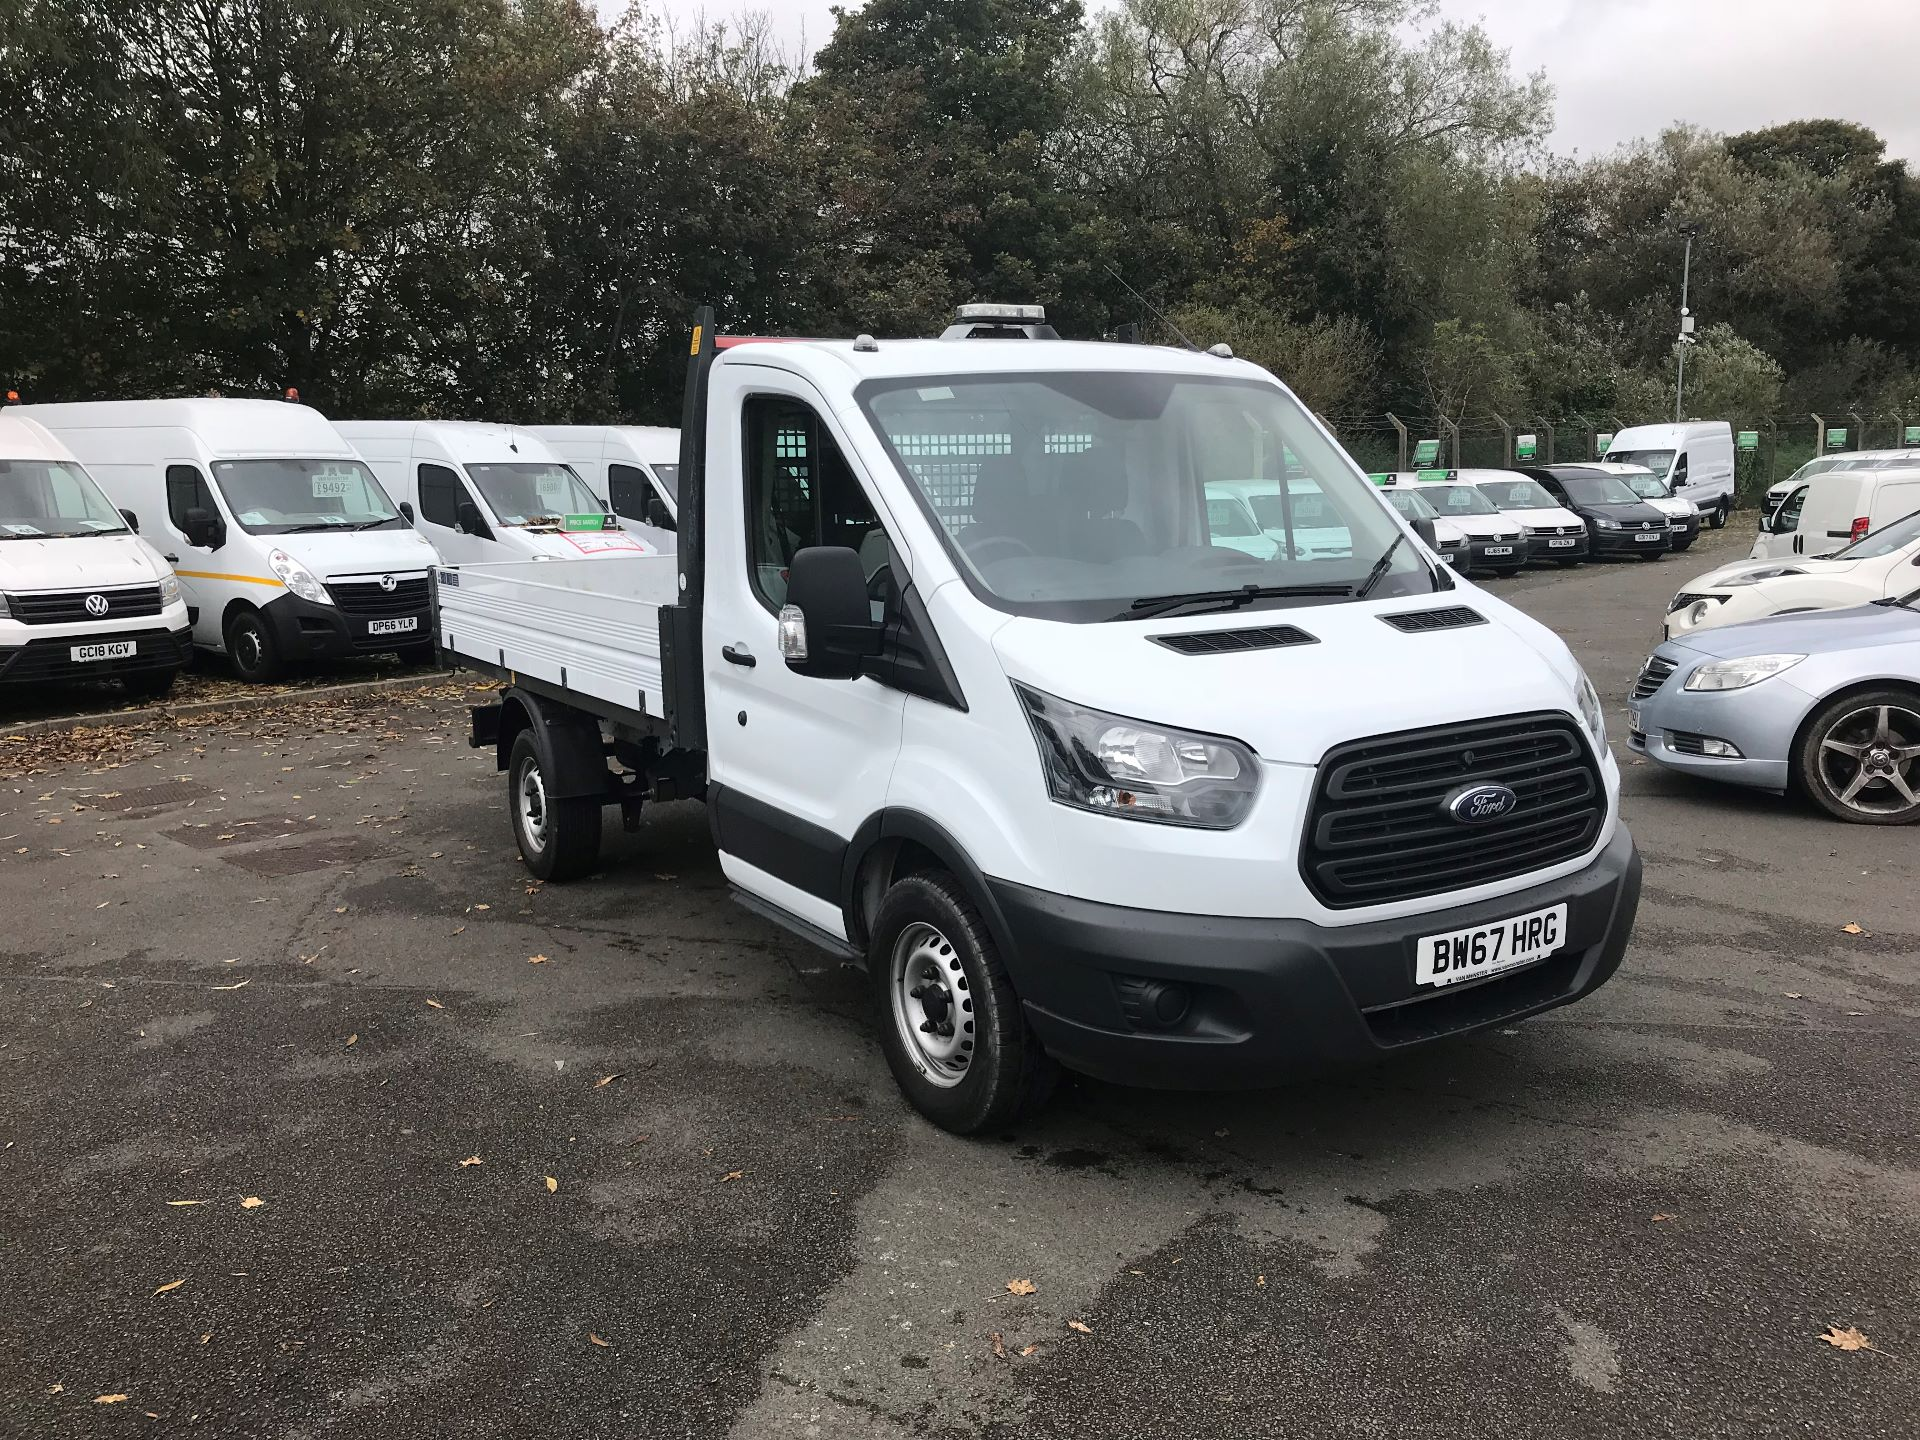 2018 Ford Transit  350 L2 SINGLE CAB TIPPER 130PS EURO 6 (BW67HRG)